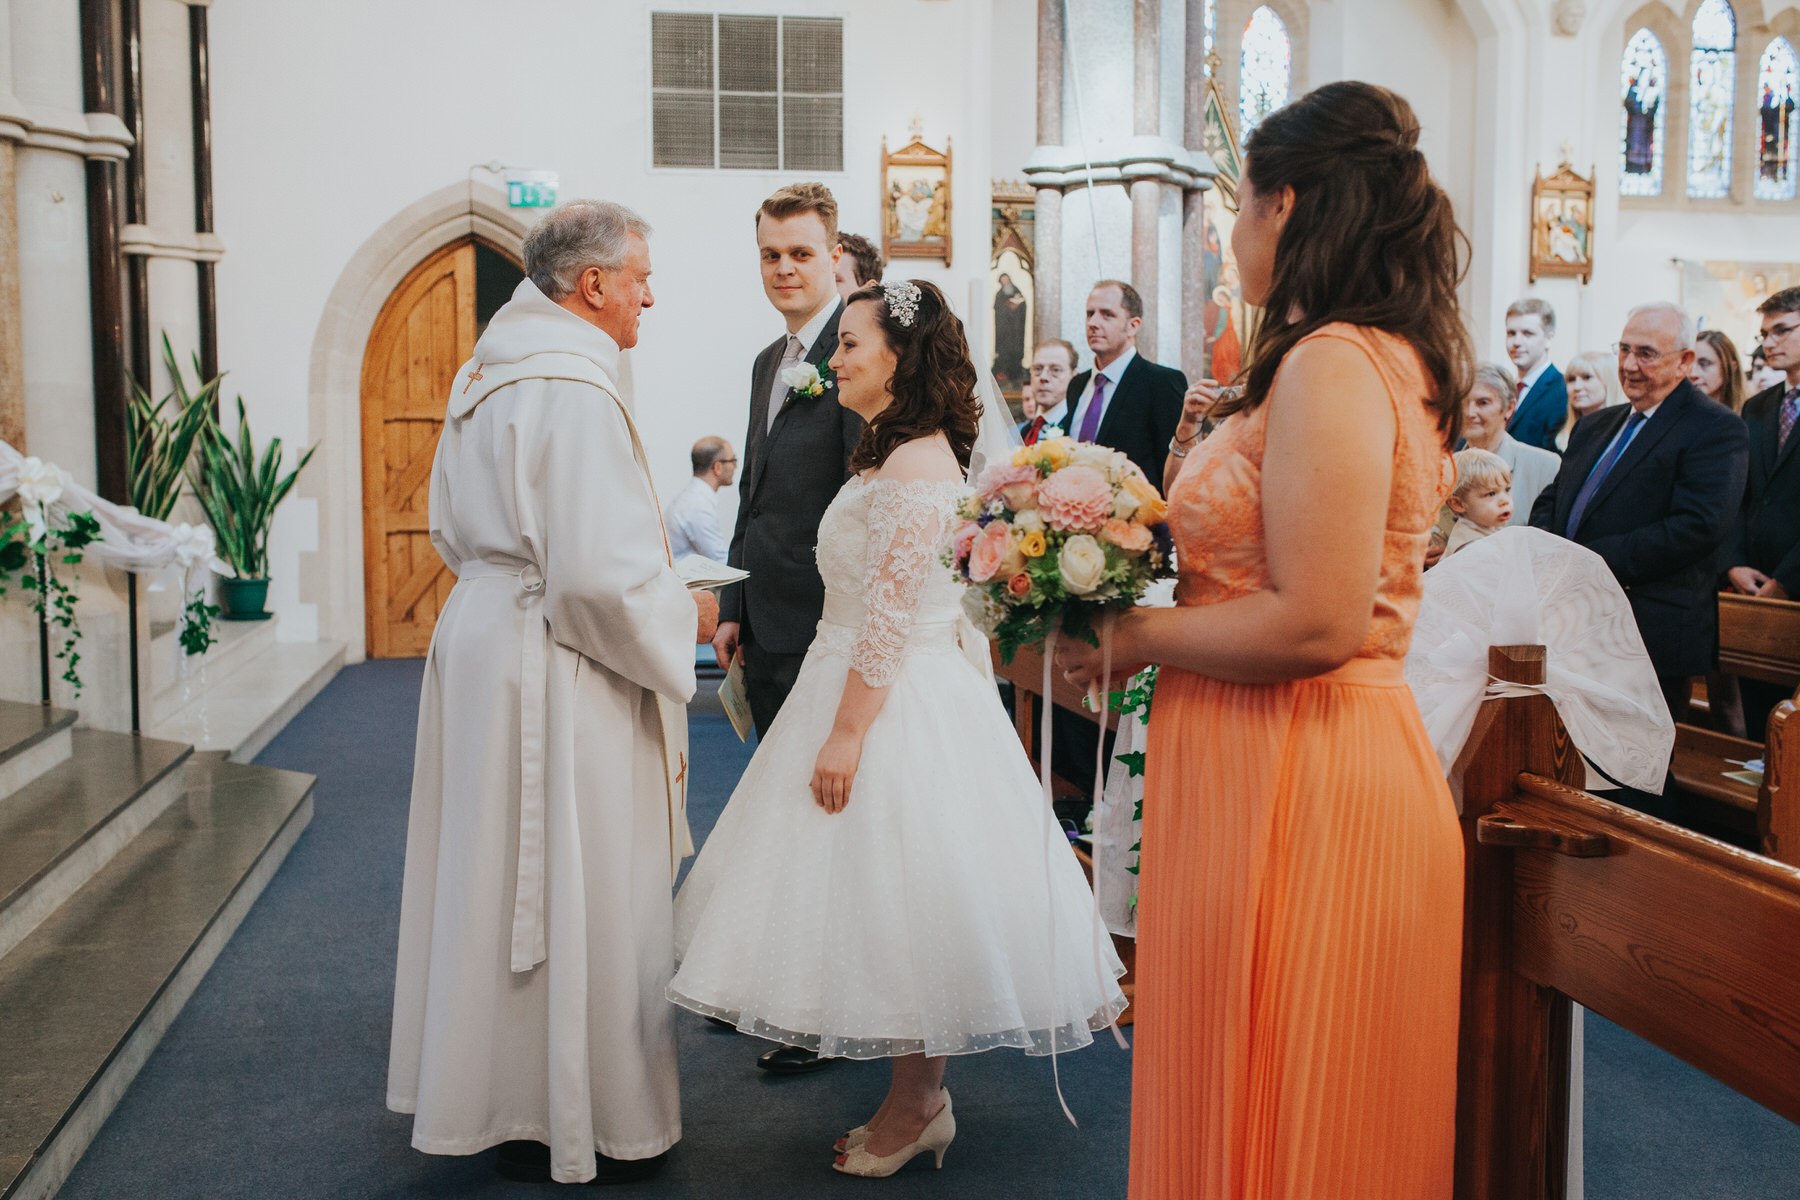 27 bride meets priest Catholic wedding.jpg